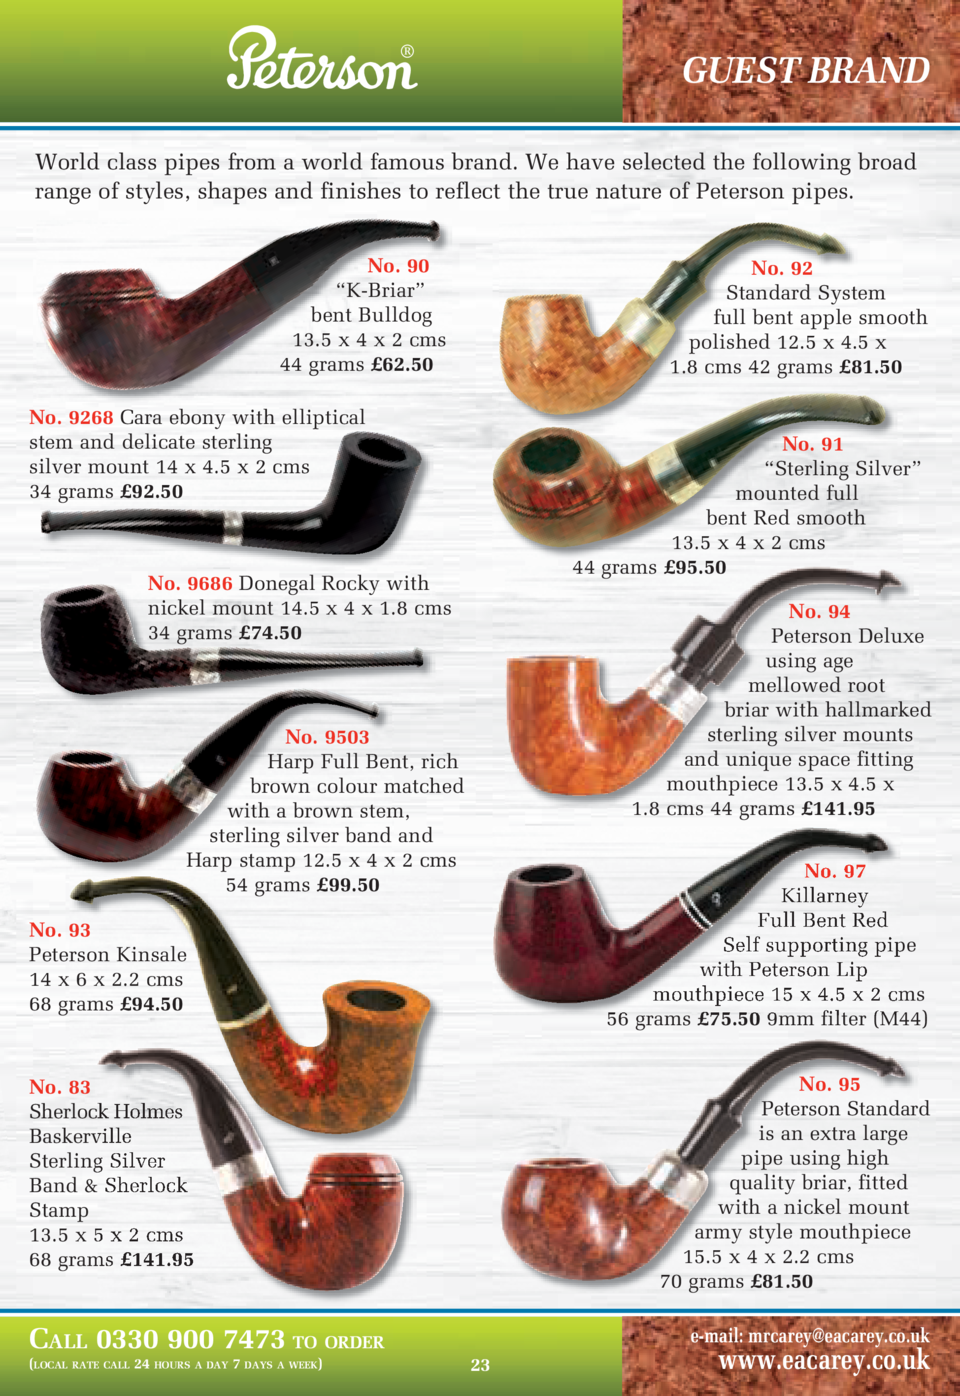 GUEST BRAND  World class pipes from a world famous brand. We have selected the following broad range of styles, shapes...